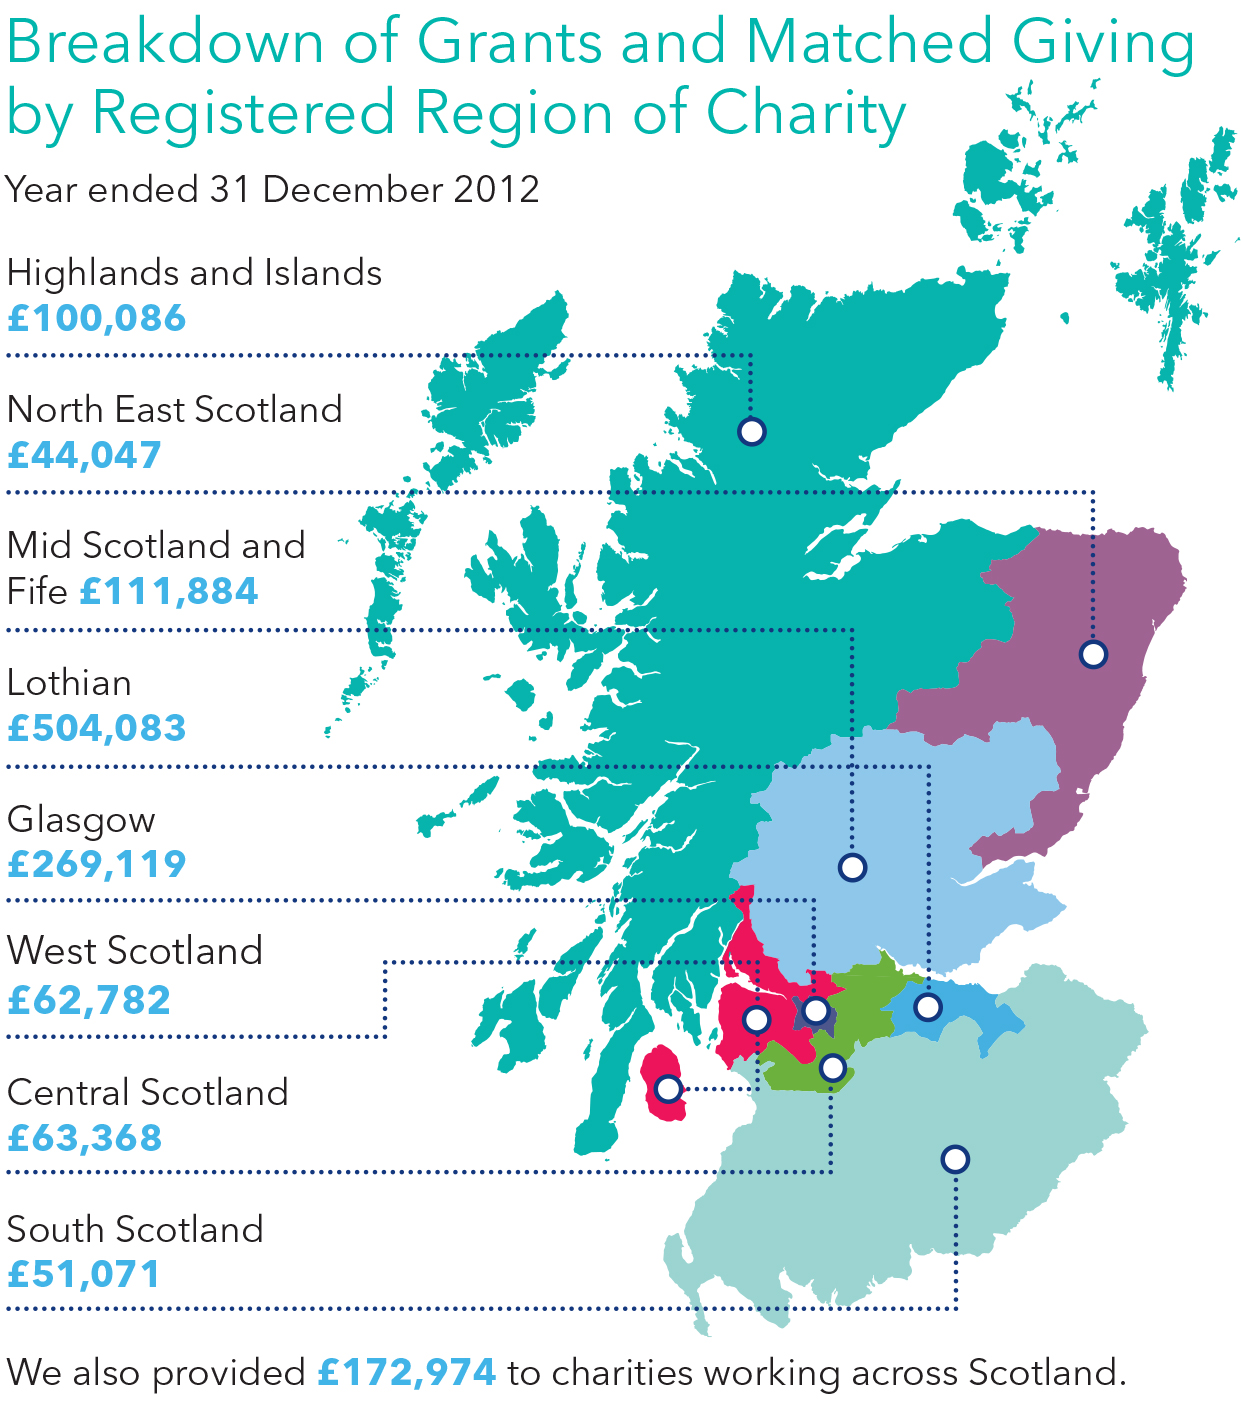 2012 Map showing charity work by region